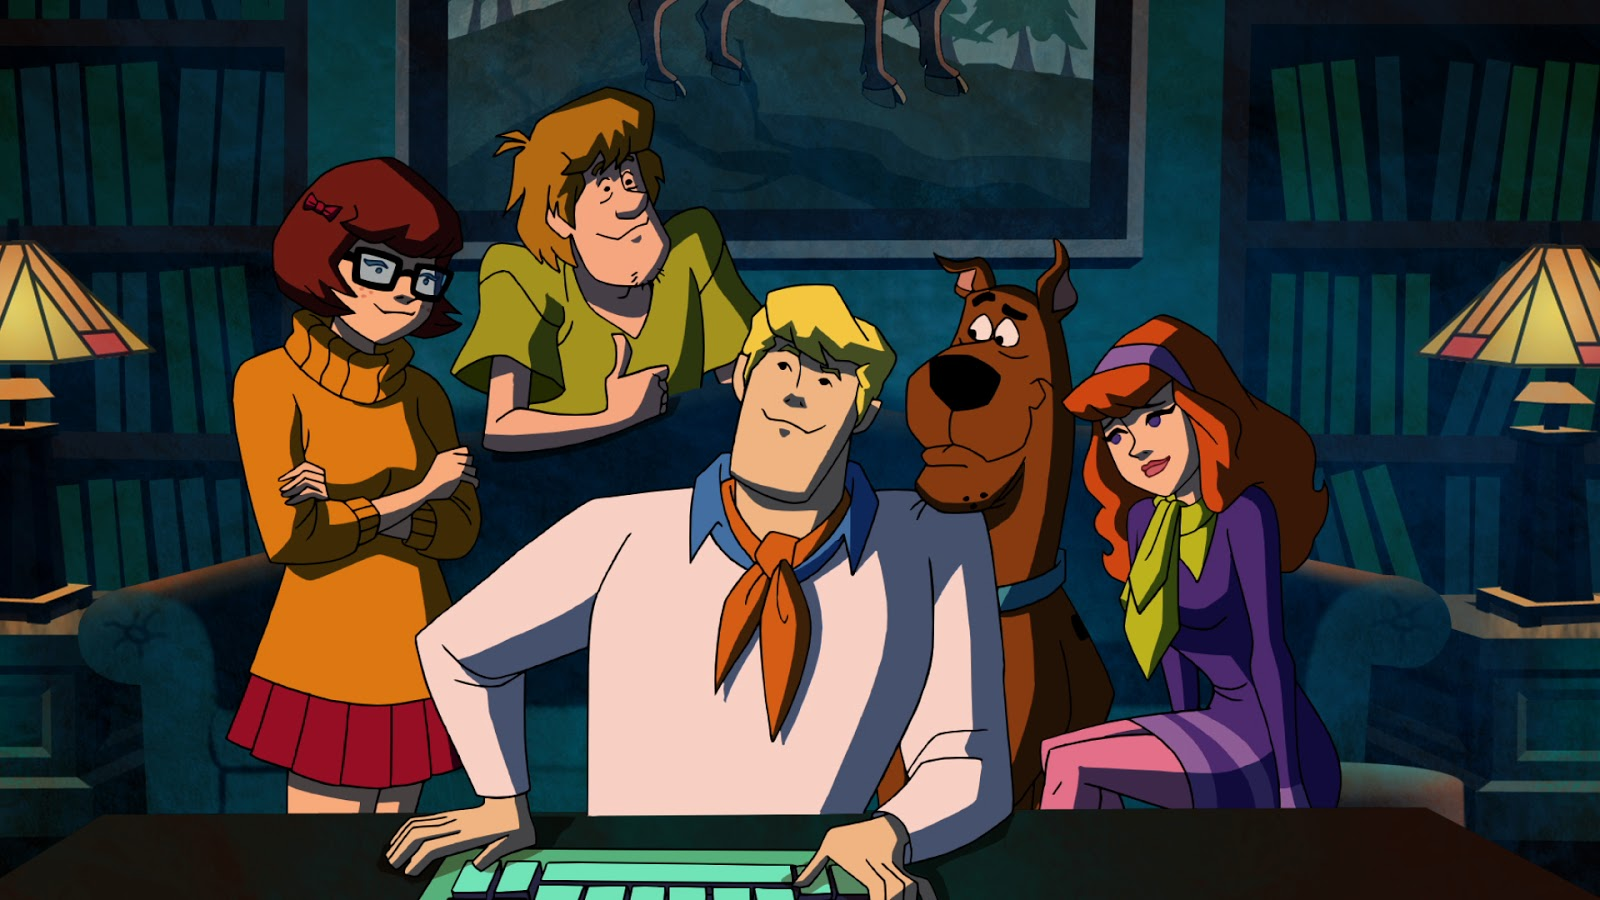 August scooby doo cartoons and scooby doo